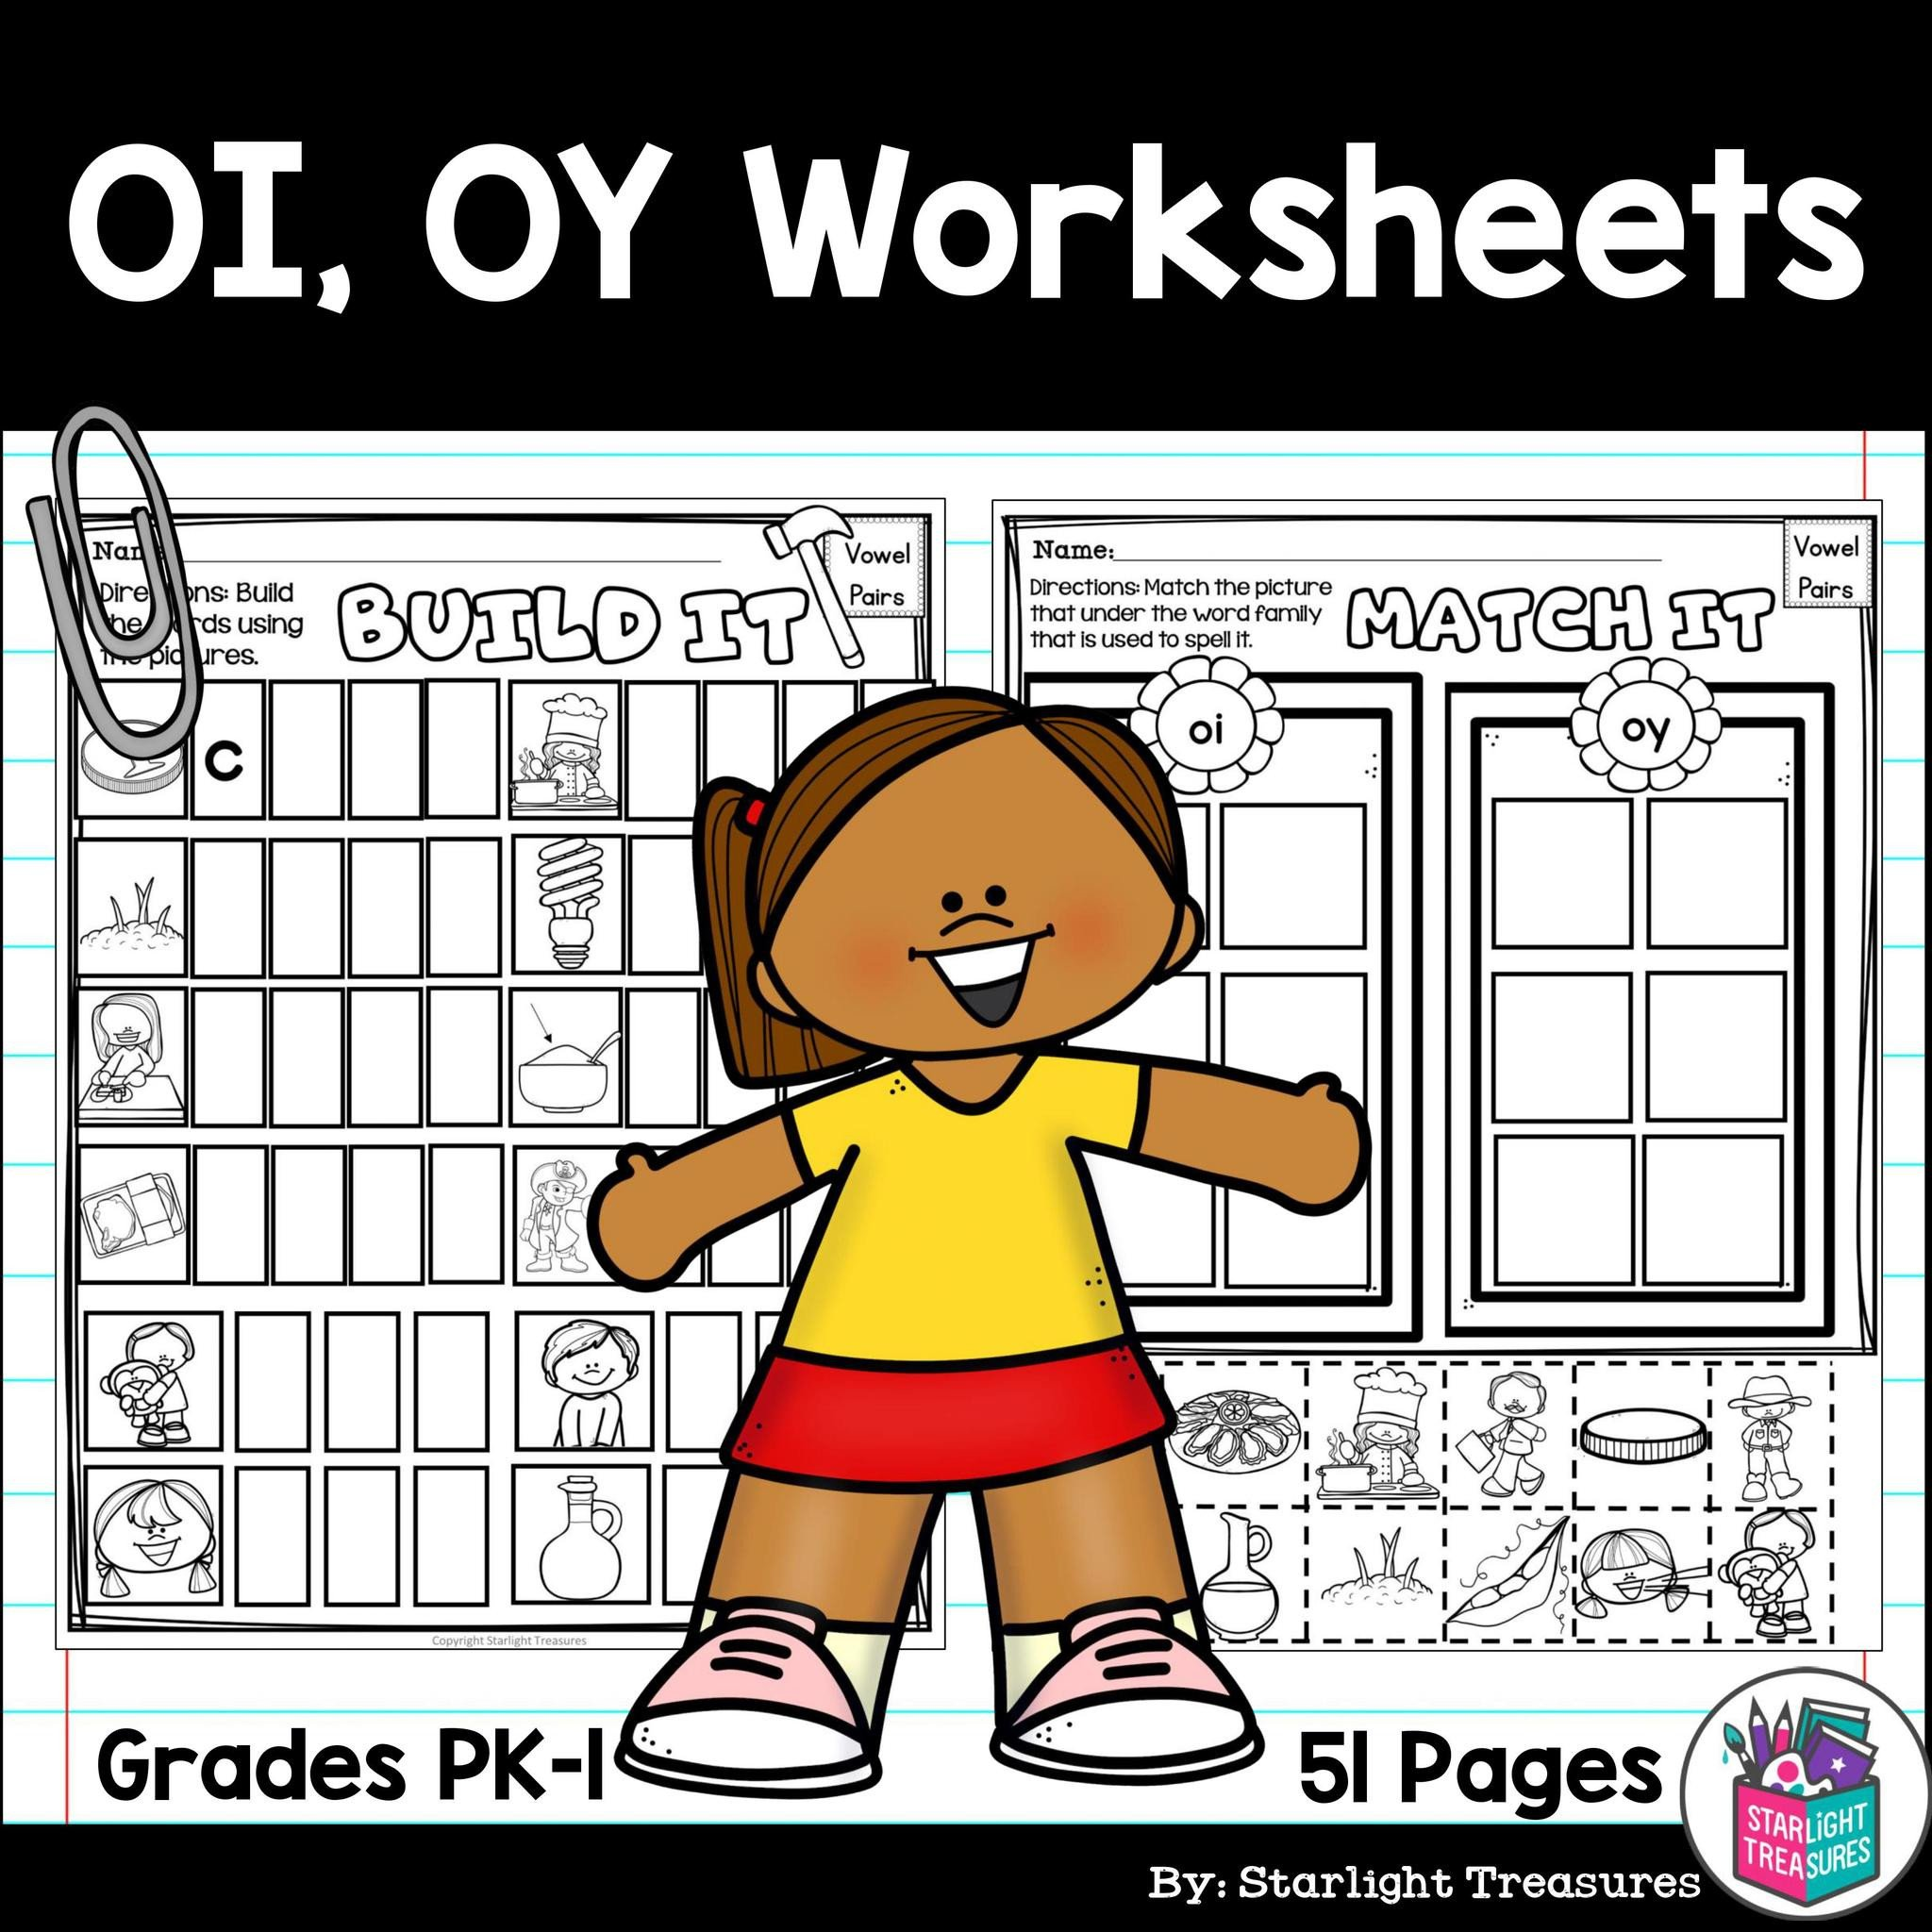 Diphthongs Oi Oy Worksheets Vowel Pairs Oi Oy Worksheets and Activities for Early